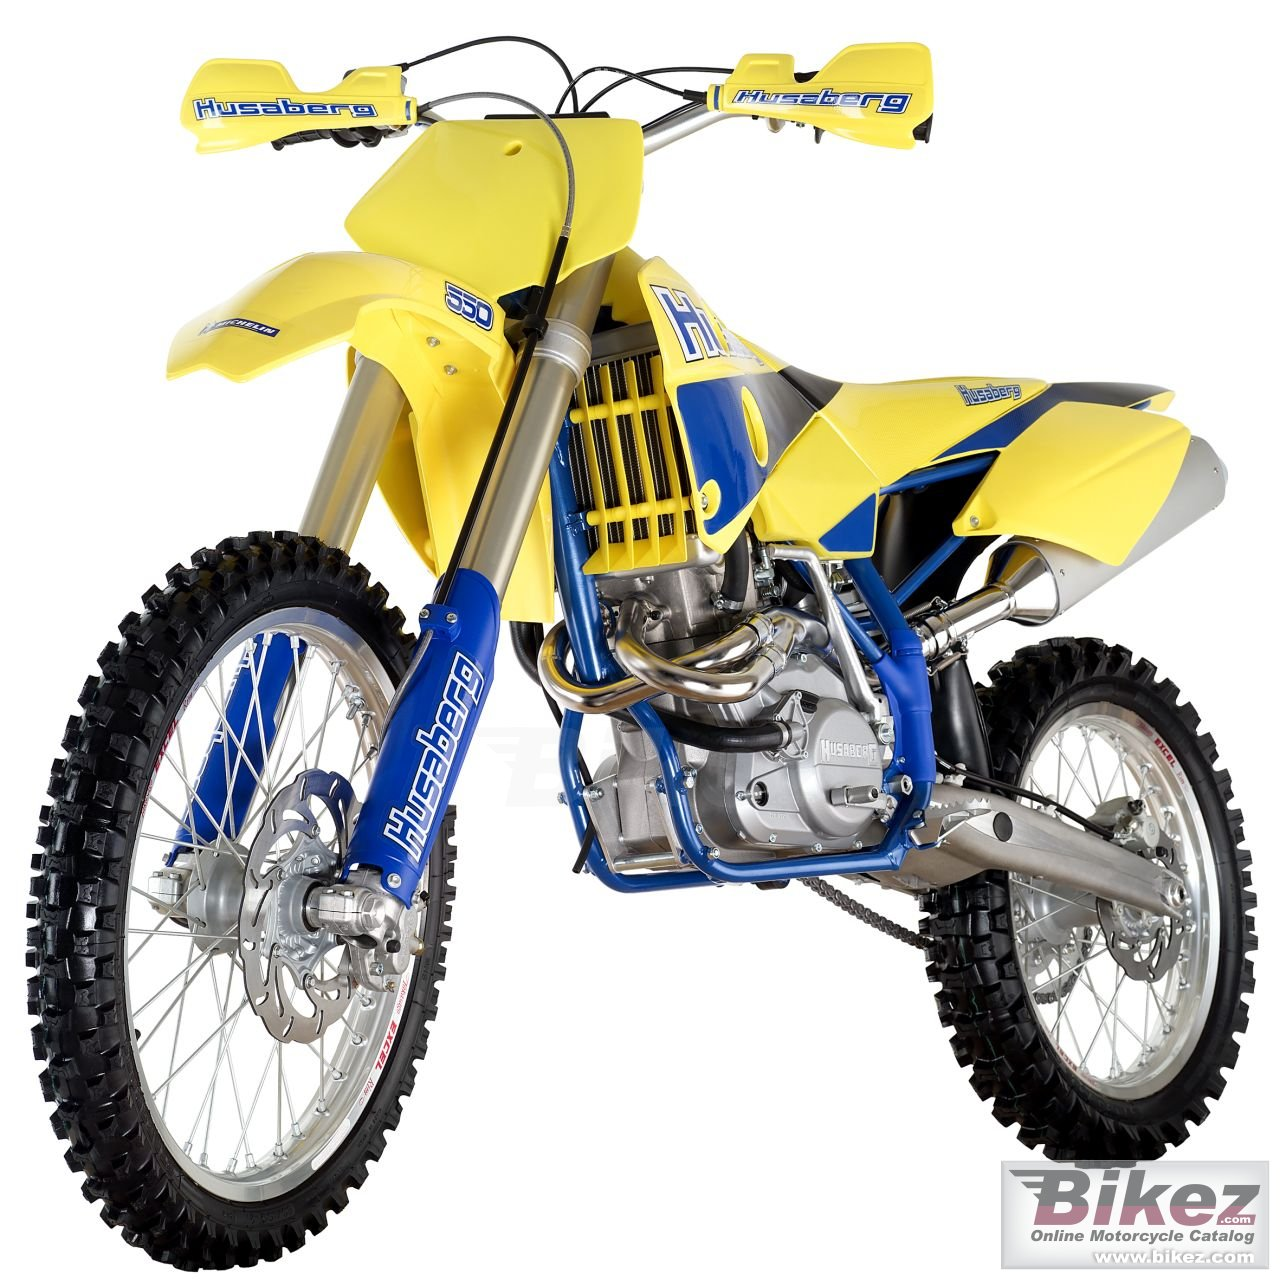 Big Husaberg fc 550 - 6 picture and wallpaper from Bikez.com